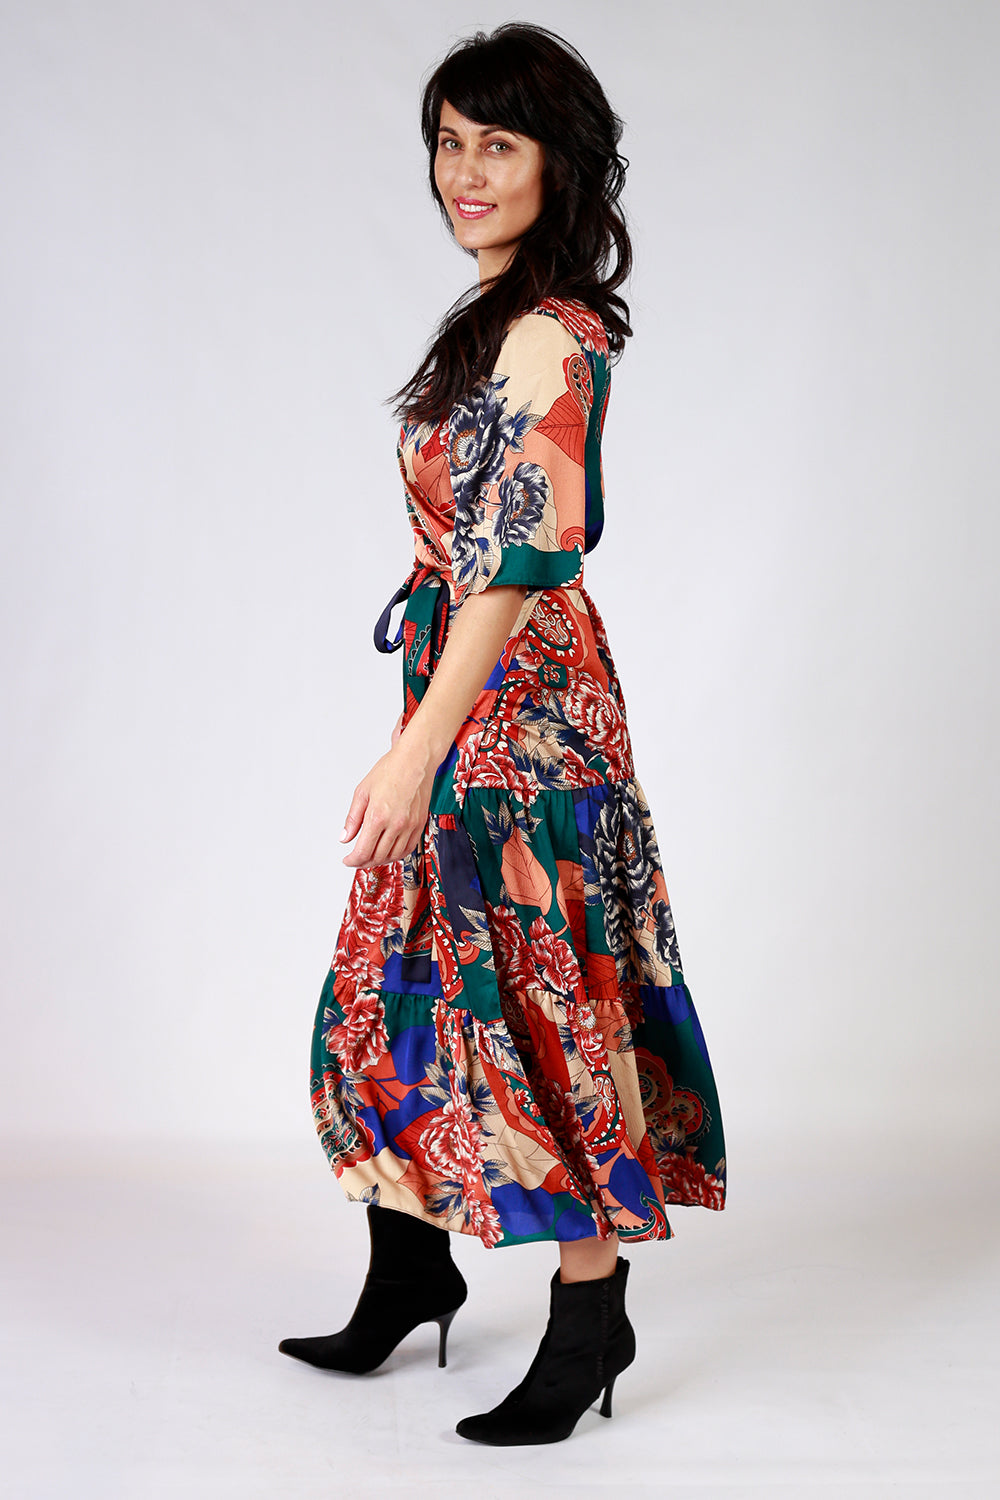 Maddly Mertle Dress | Gypsy Fare AW20 | Annah Stretton | Wrap Dress | Annah Stretton Fashion | Designer Fashion | Floral Dress | Polka Dots | Designer Dress | Boho Dress | Annah Stretton NZ | Designer Fashion NZ | Evening Dresses NZ